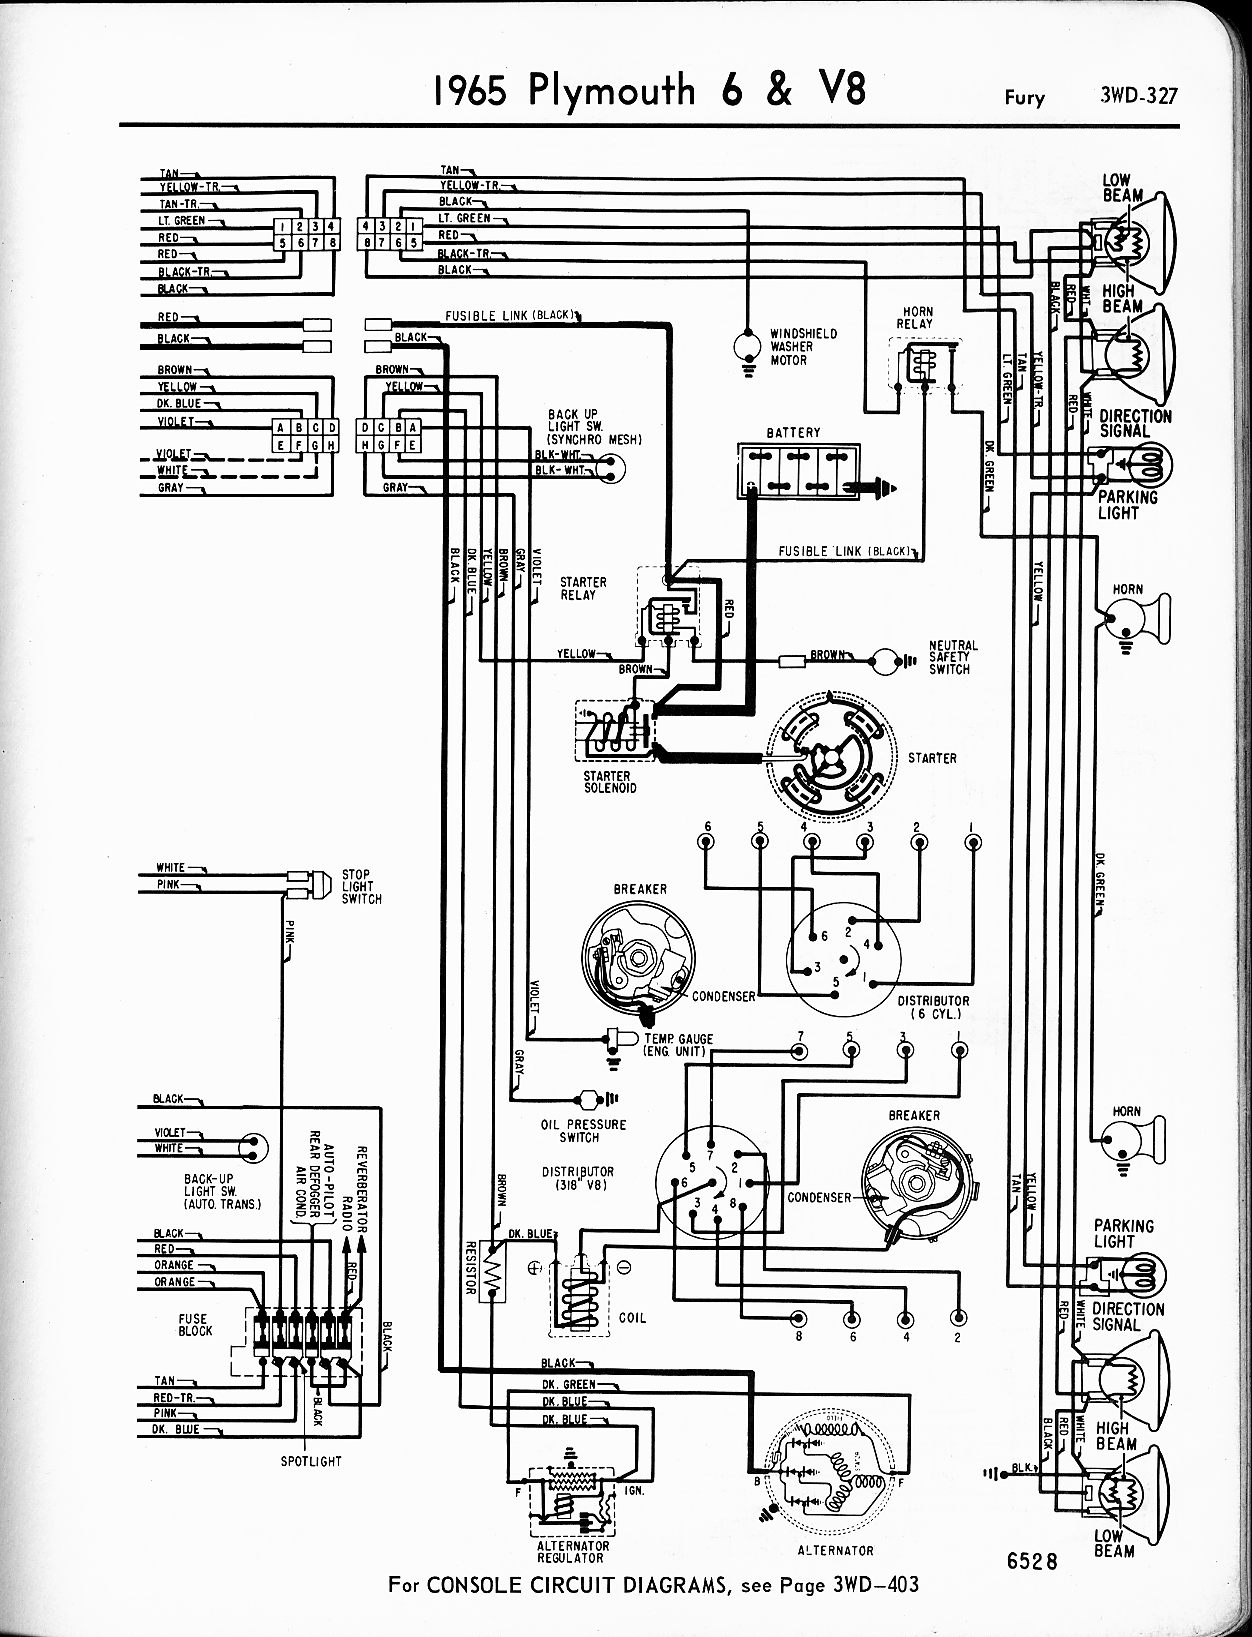 1964 barracuda wiring diagrams trusted wiring diagram \u2022 1969 mustang wiring diagram 1956 1965 plymouth wiring the old car manual project rh oldcarmanualproject com 1956 ford wiring diagram 1967 ford mustang wiring diagram